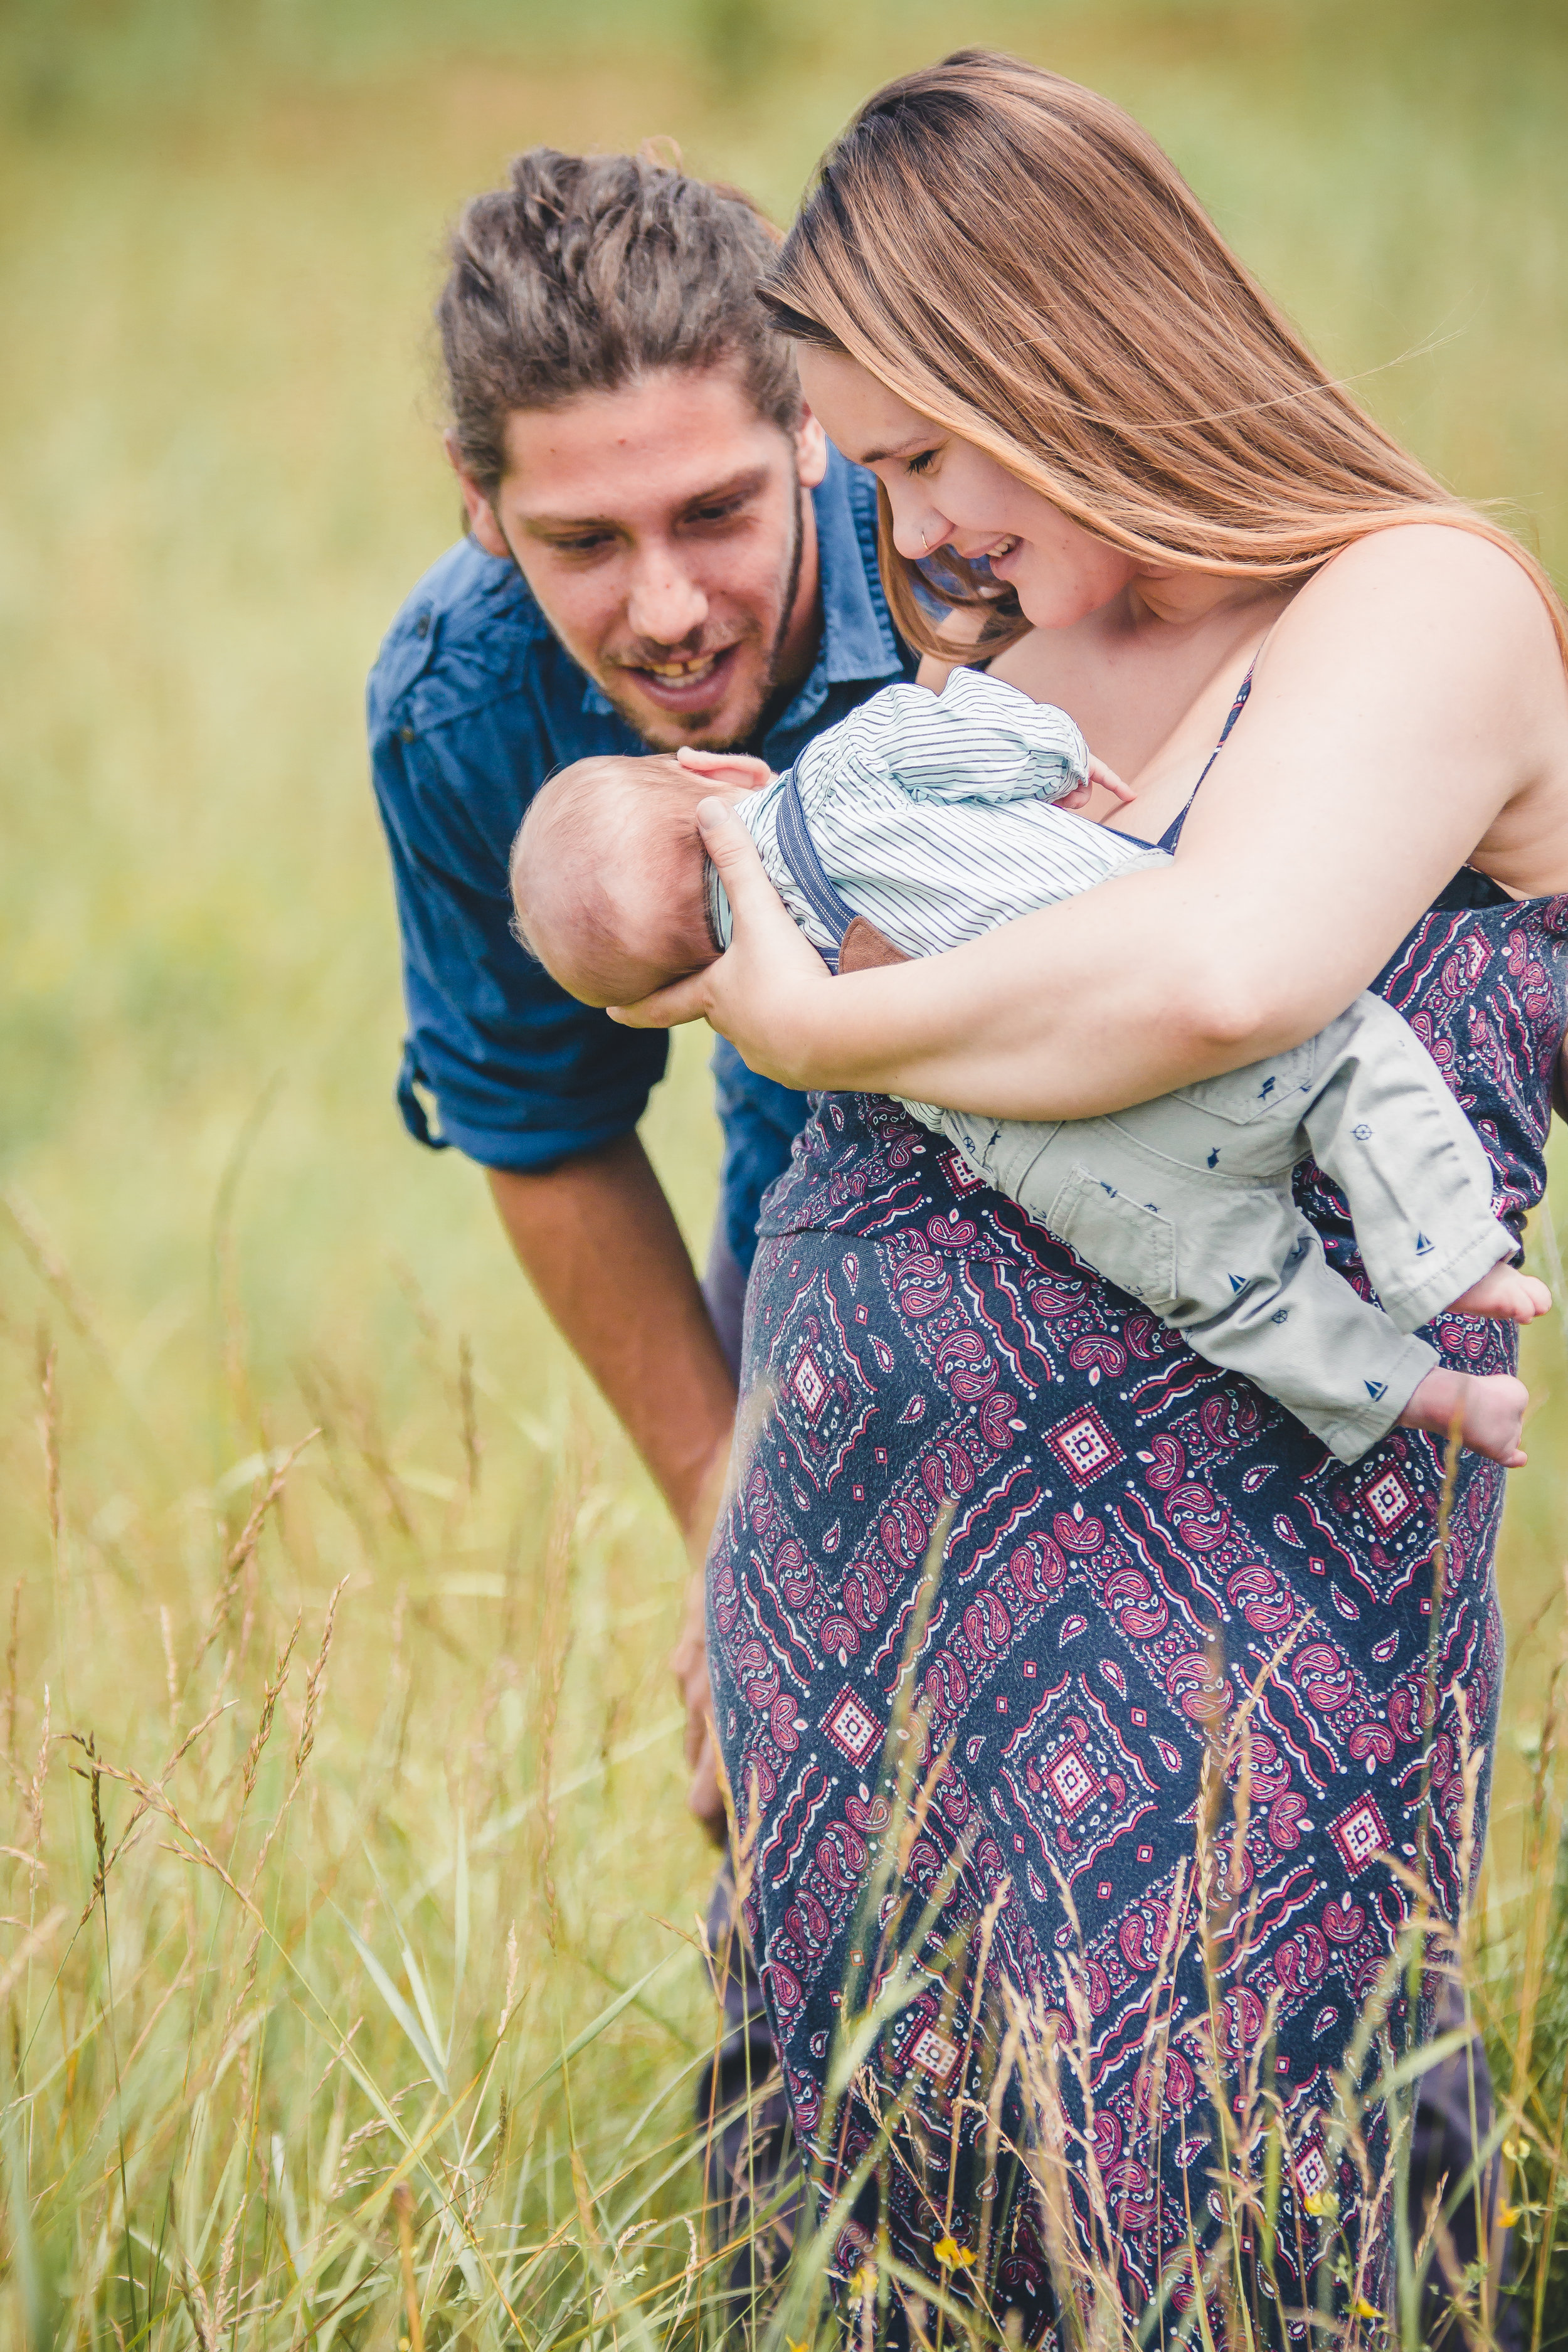 Breastfeeding Week, Nursing, Happy National Breastfeeding Week, Breast is Best, Newborn, Supportive Husband with Nursing Wife, Amy D Photography Barrie and Muskoka Wedding Photography, Family Photography, Newborn Photography, Birthing Photography, Barrie Lifestyle Photography,